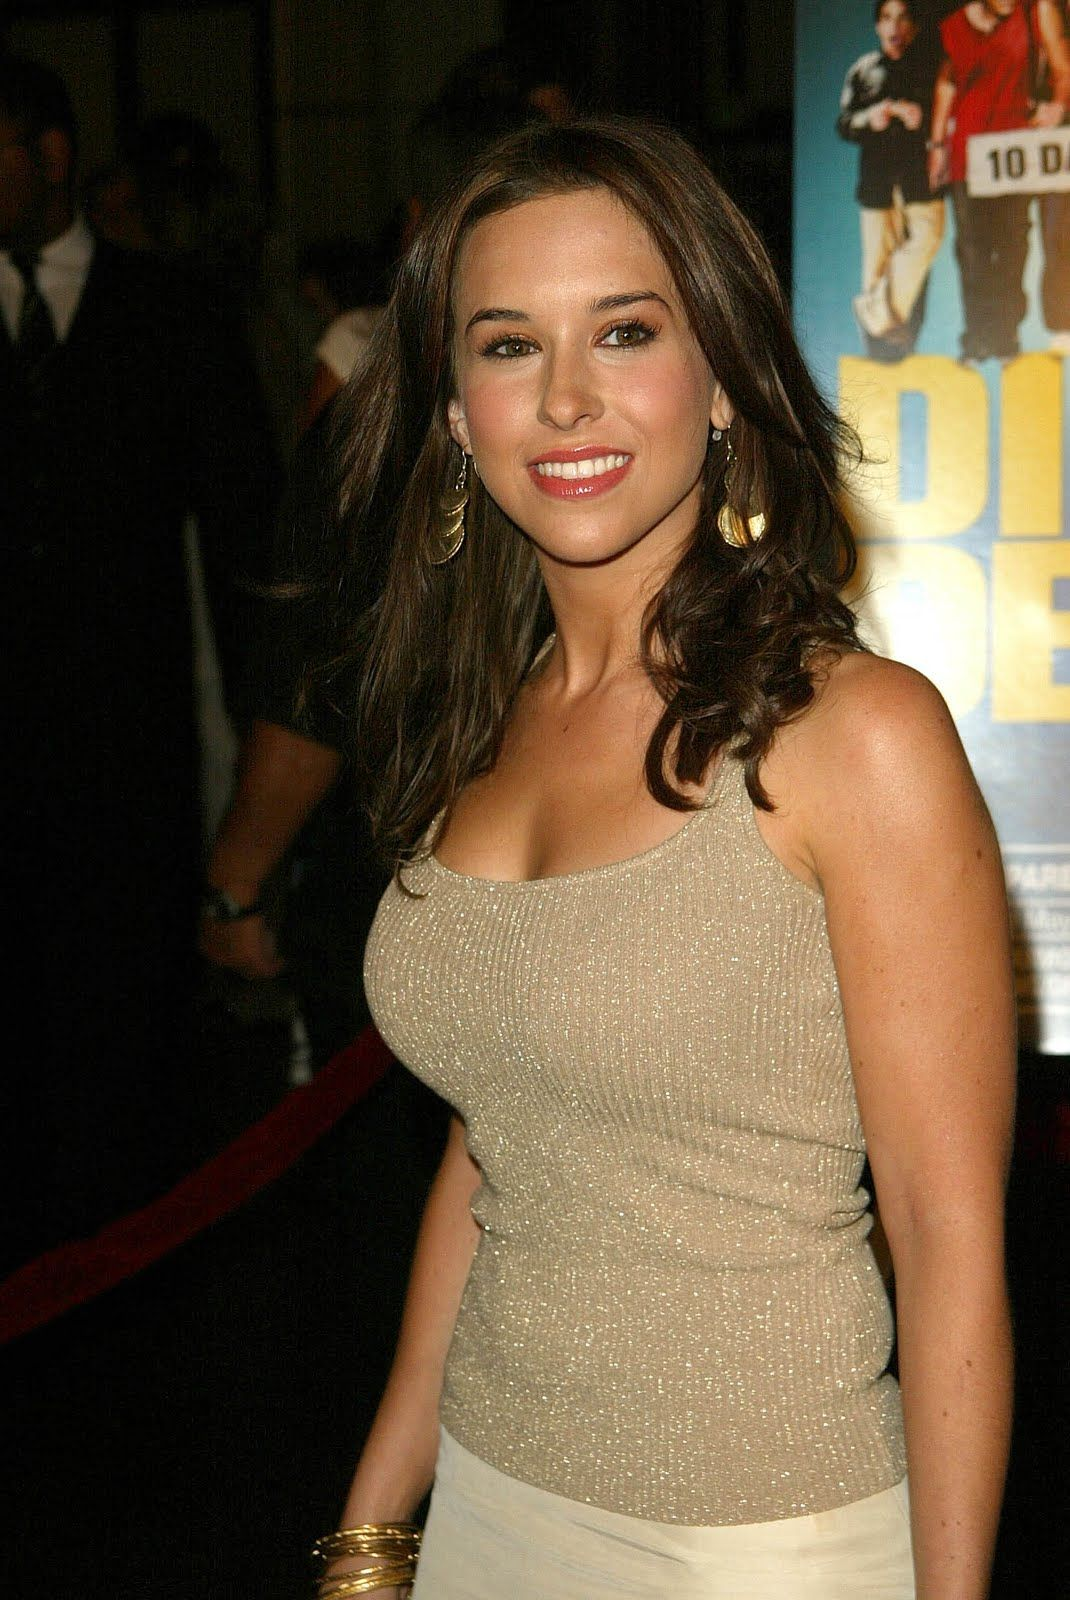 Fotos Lacey Chabert naked (34 photos), Pussy, Paparazzi, Twitter, swimsuit 2020